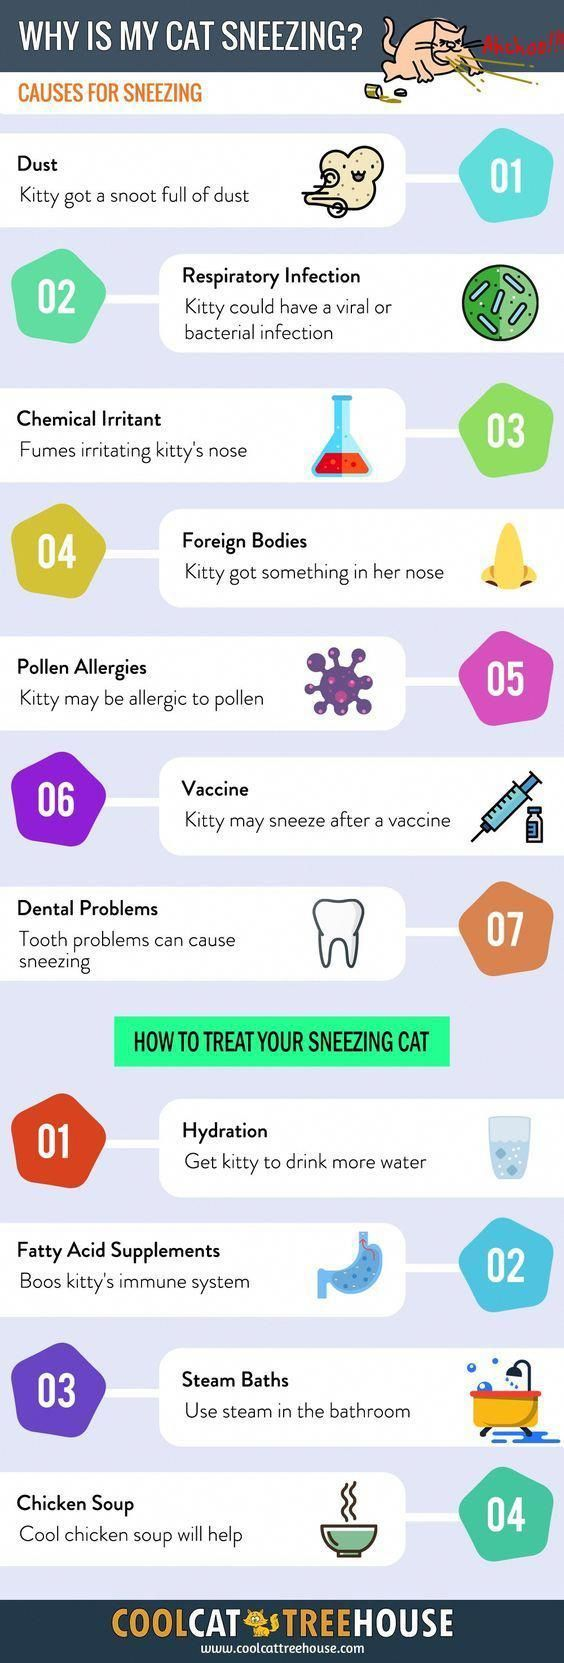 Why Your Cat Keeps Sneezing But Seems Fine (With images